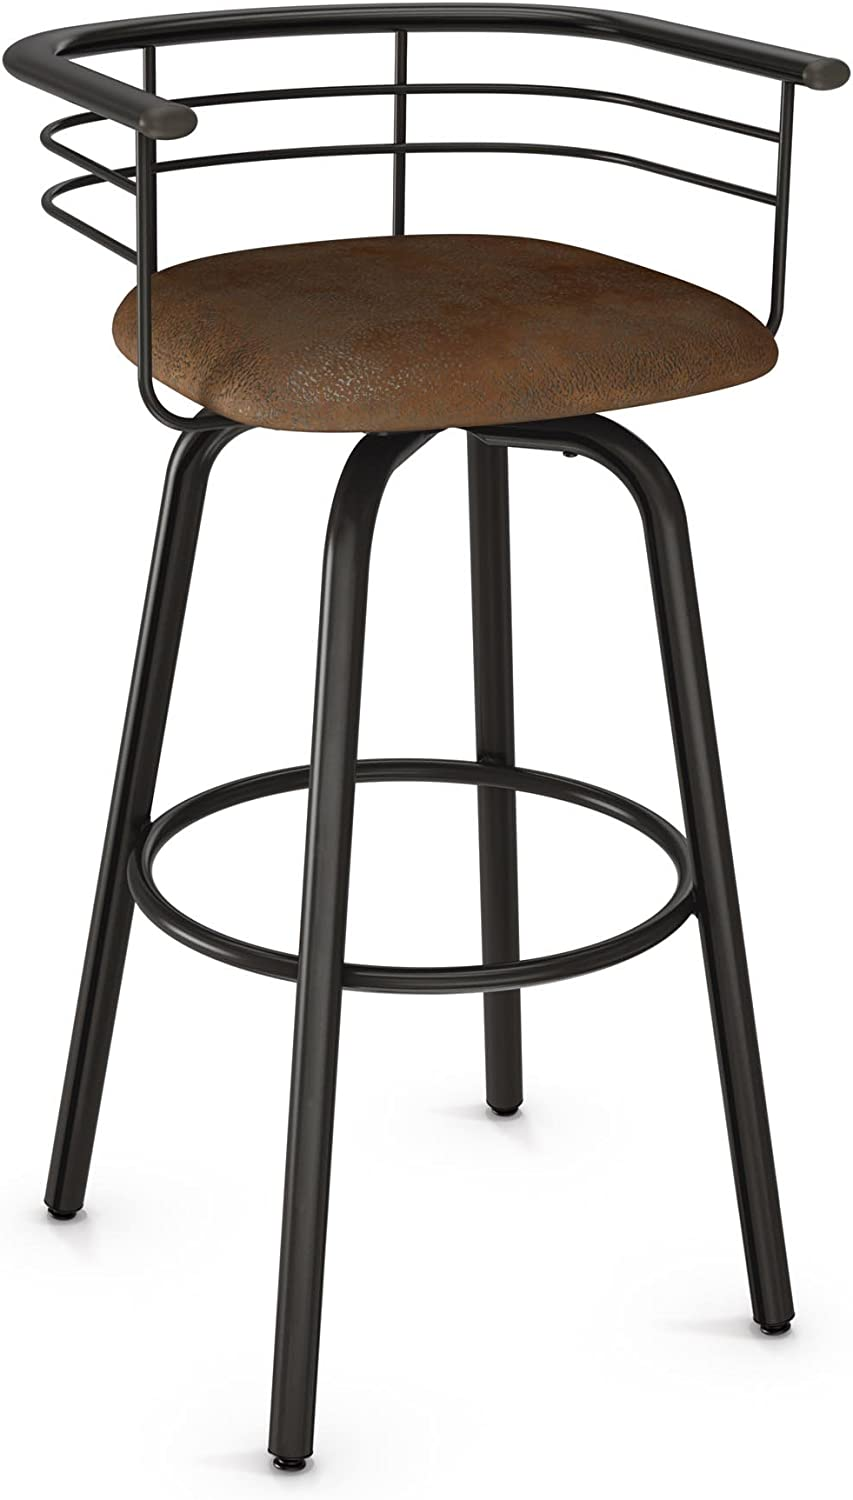 Amisco Turbo Swivel Metal Counter Stool In Semi Transparent Gun Metal Finish And Medium Brown Soft Polyester Amazon Co Uk Kitchen Home